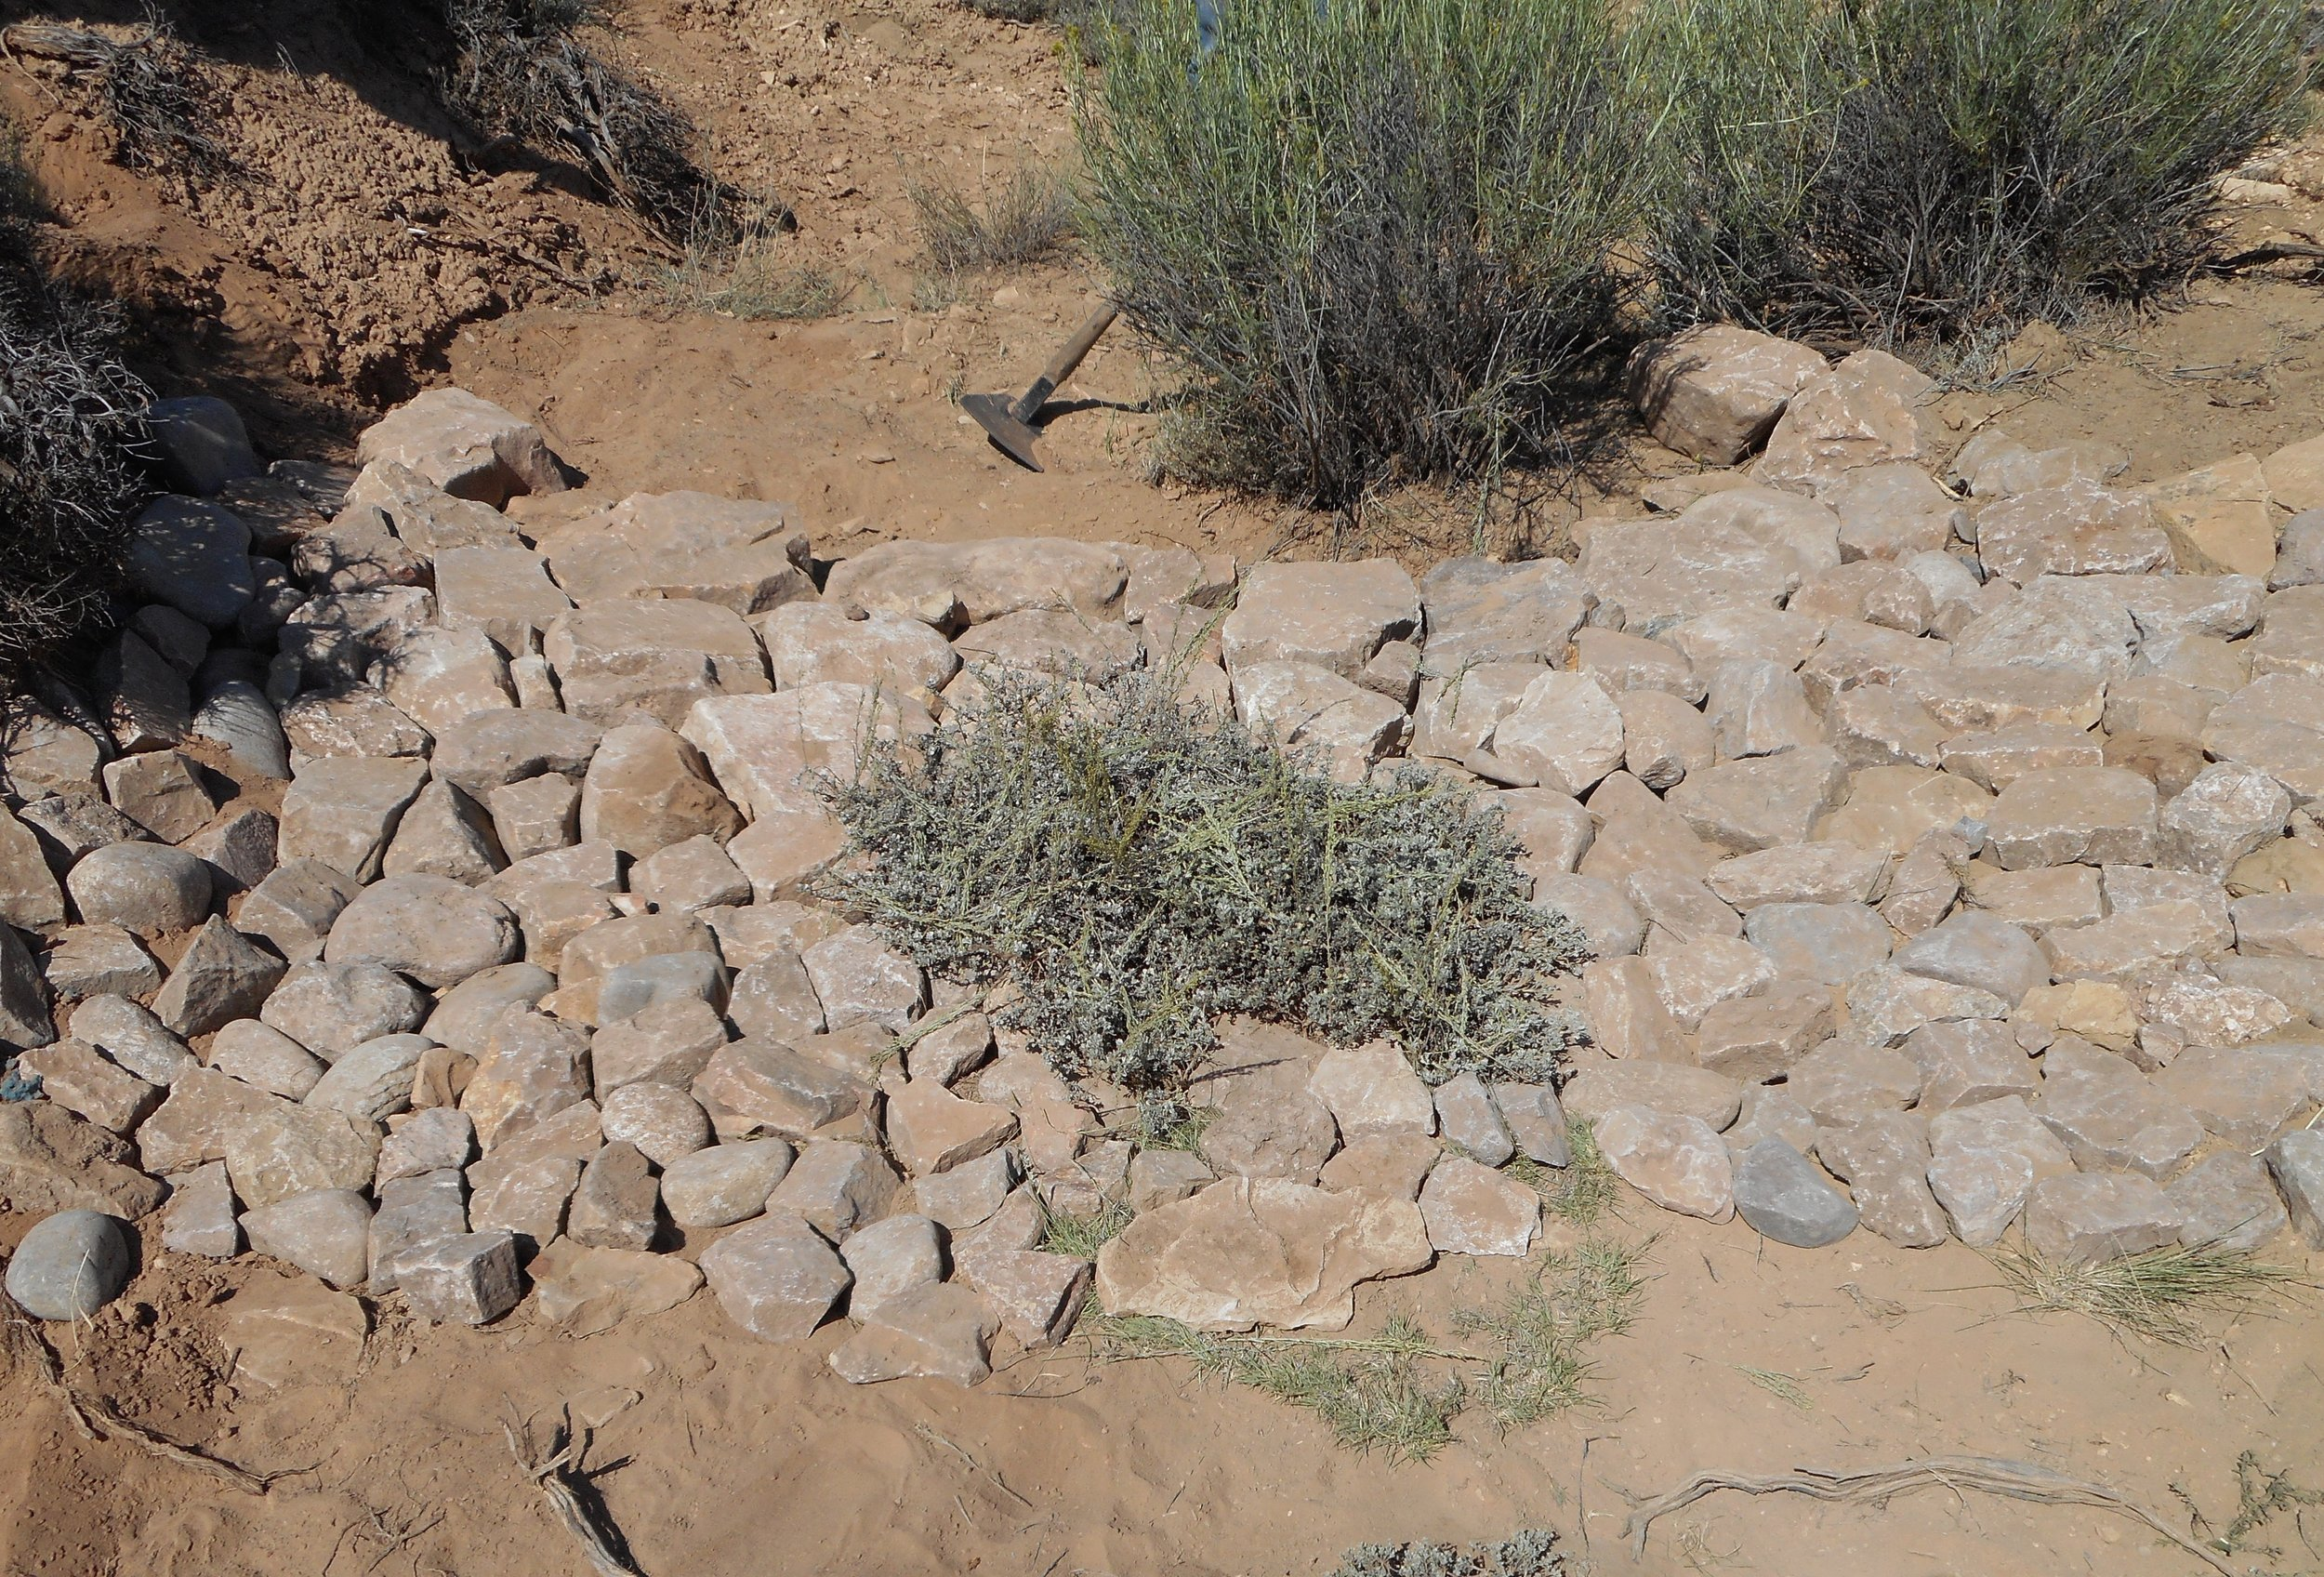 Click  here  to see a video of how to build a one rock dam to control erosion.